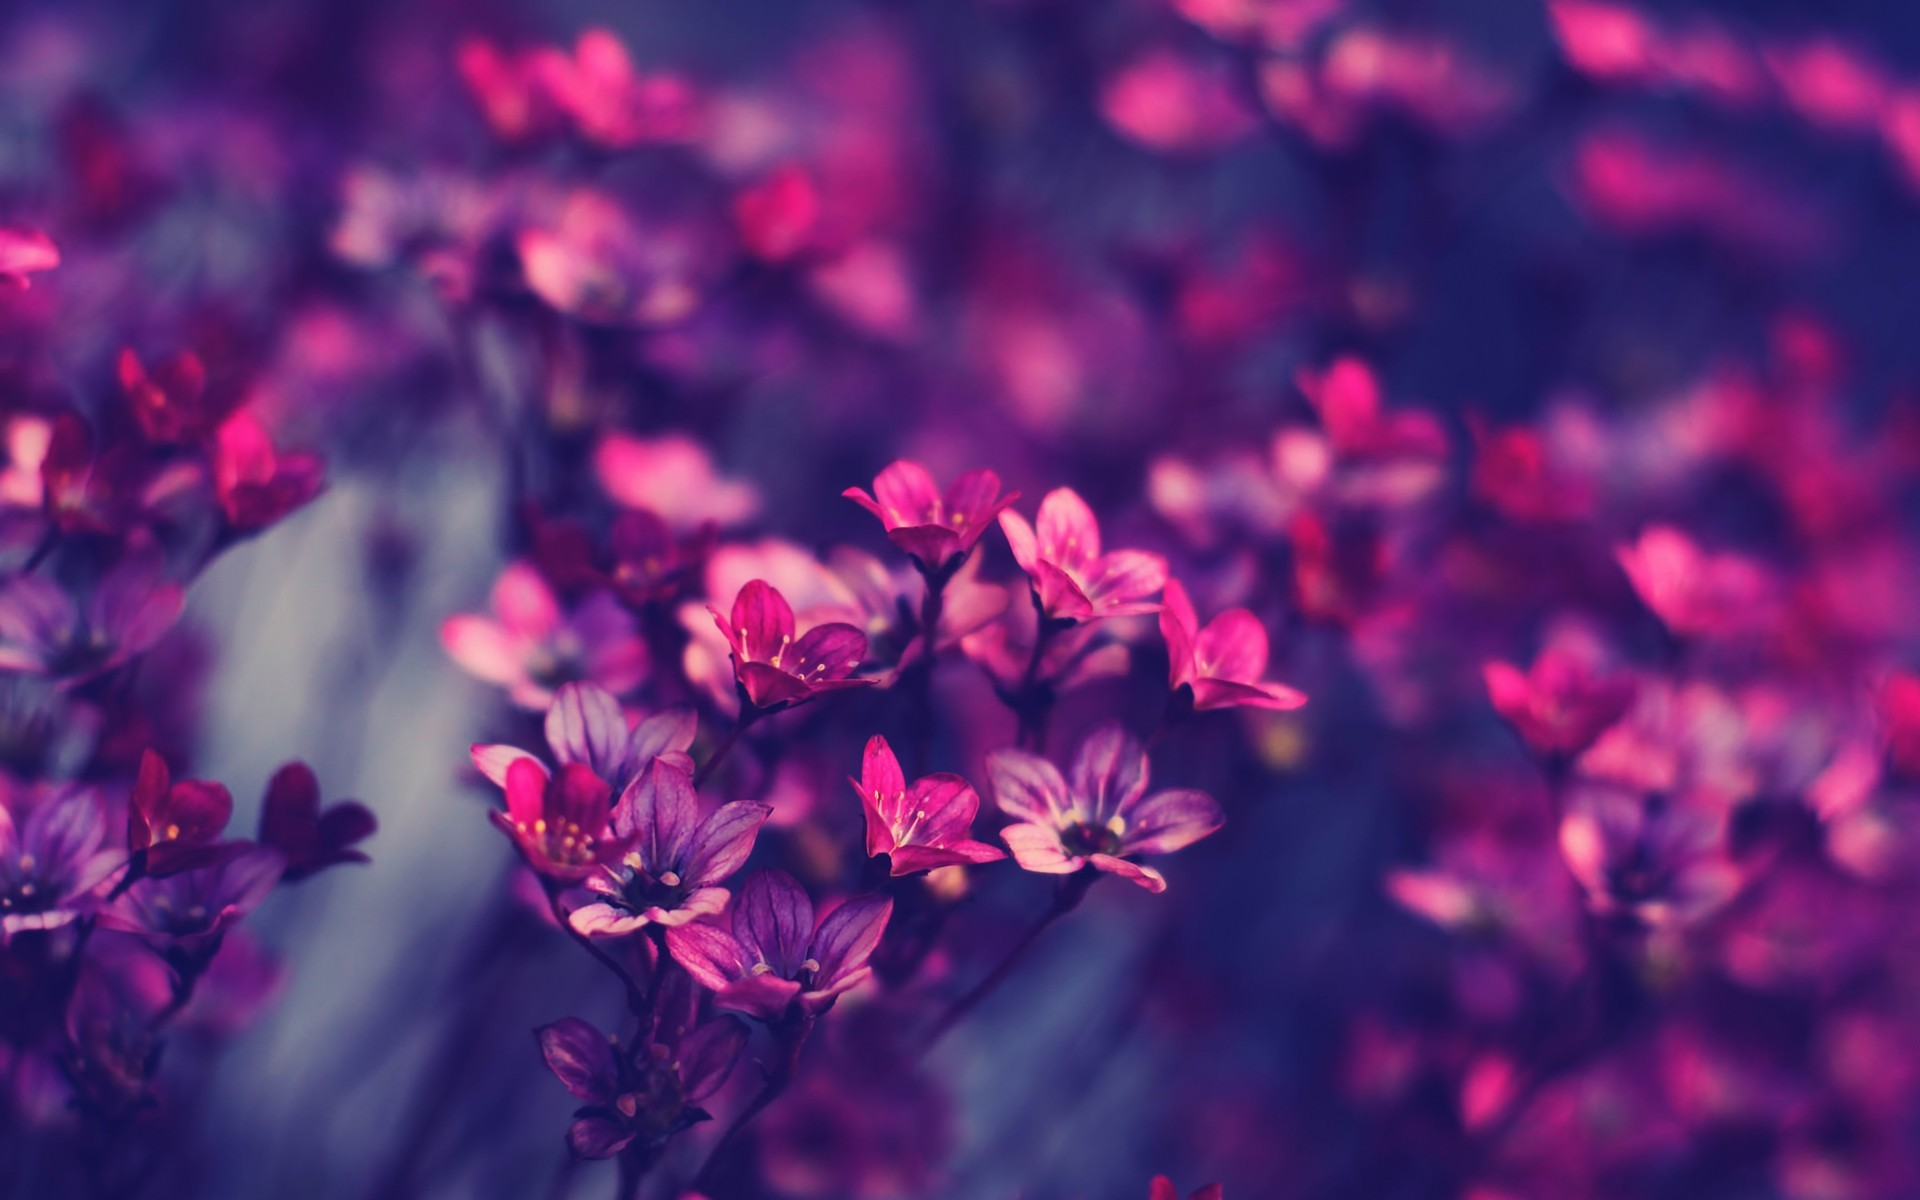 2016 Purple Flowers HDQ Wallpapers   Ozon.LIFE Wallpapers